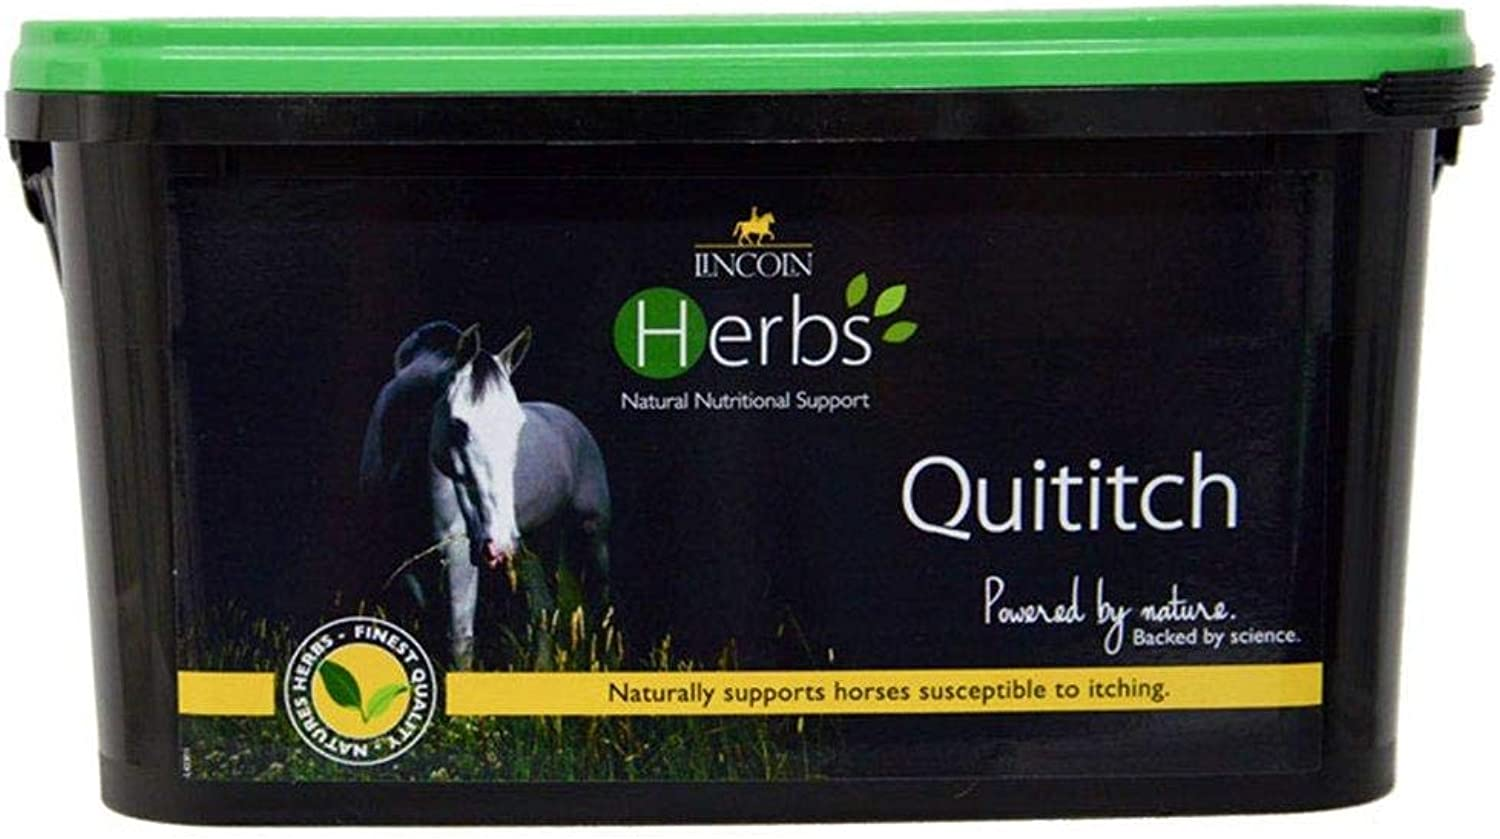 Lincoln Herbs Quititch (35.25oz) (May Vary)